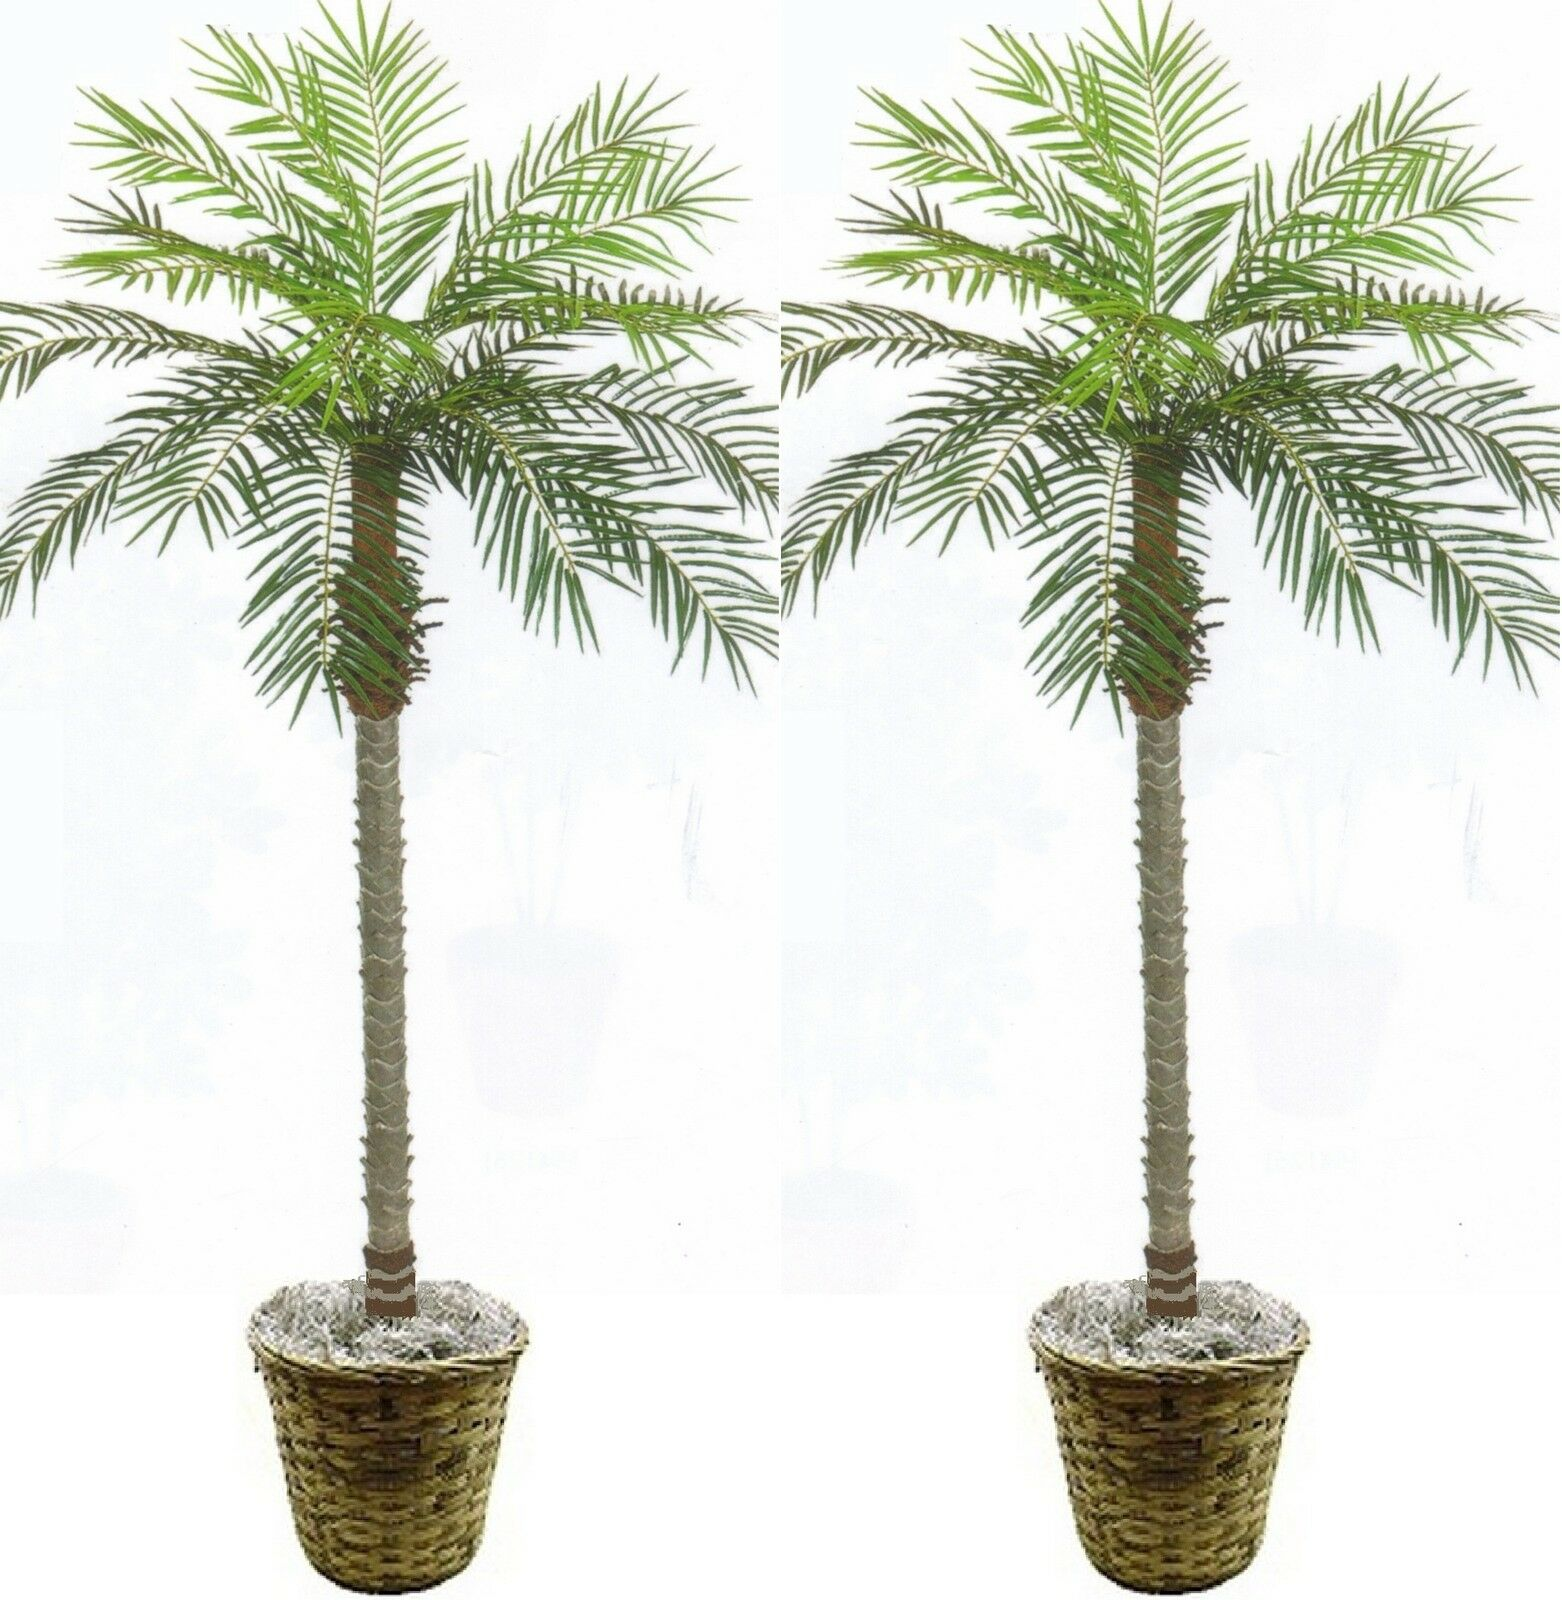 2 Artificial Phoenix Palm Tree 7' Plant Porch In Basket Pot Areca Topiary Sago